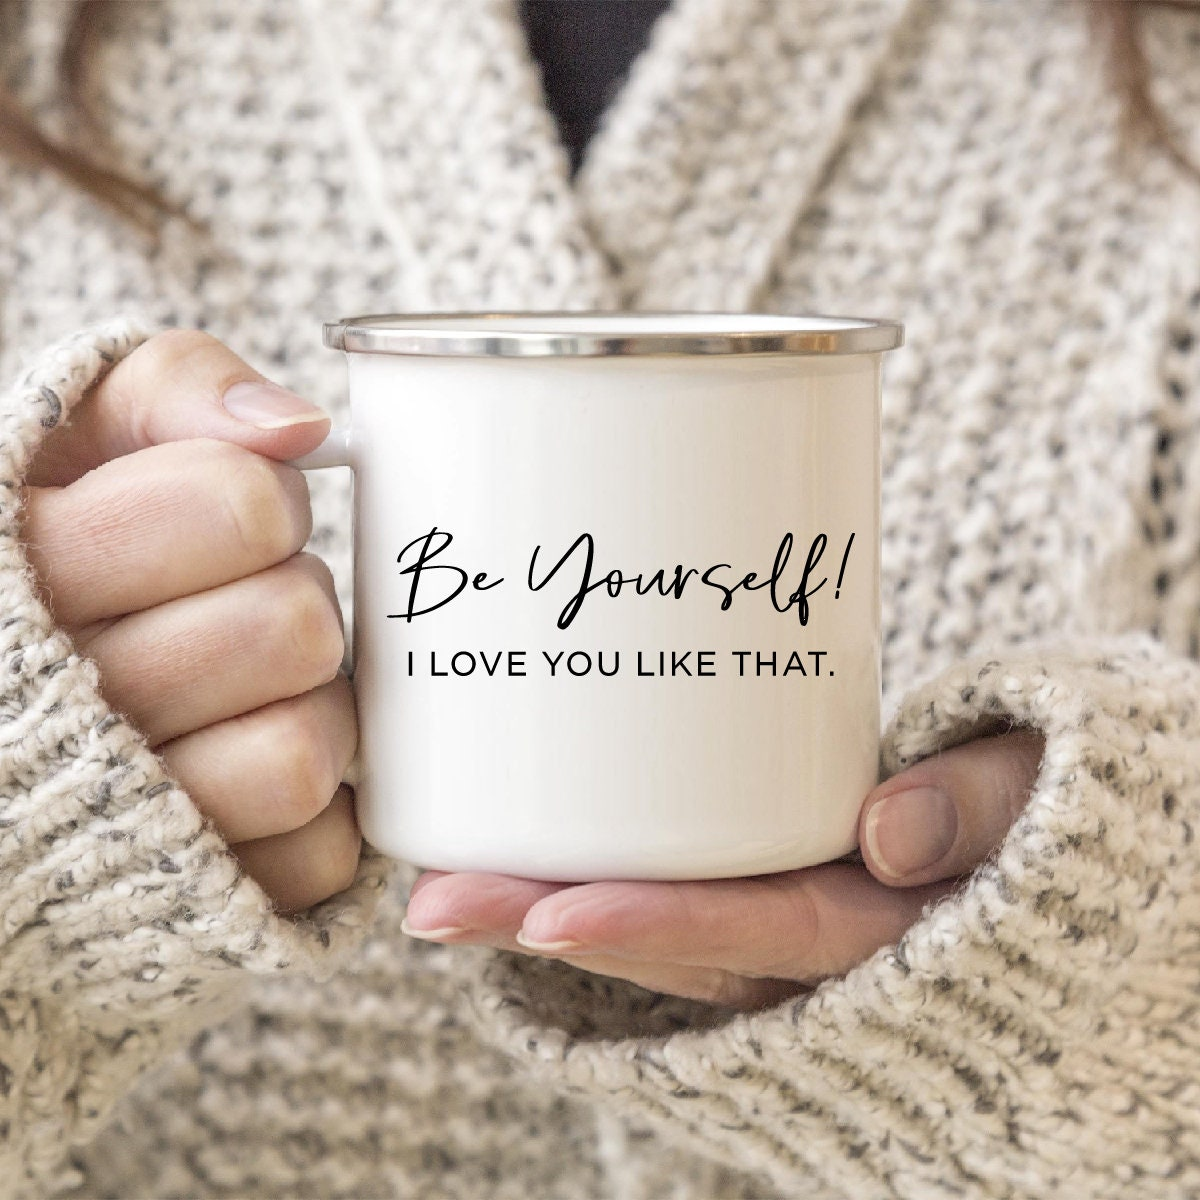 Be Yourself Camp Mug Camping Gift For Friend Her Valentine Gifts Daughter Birthday